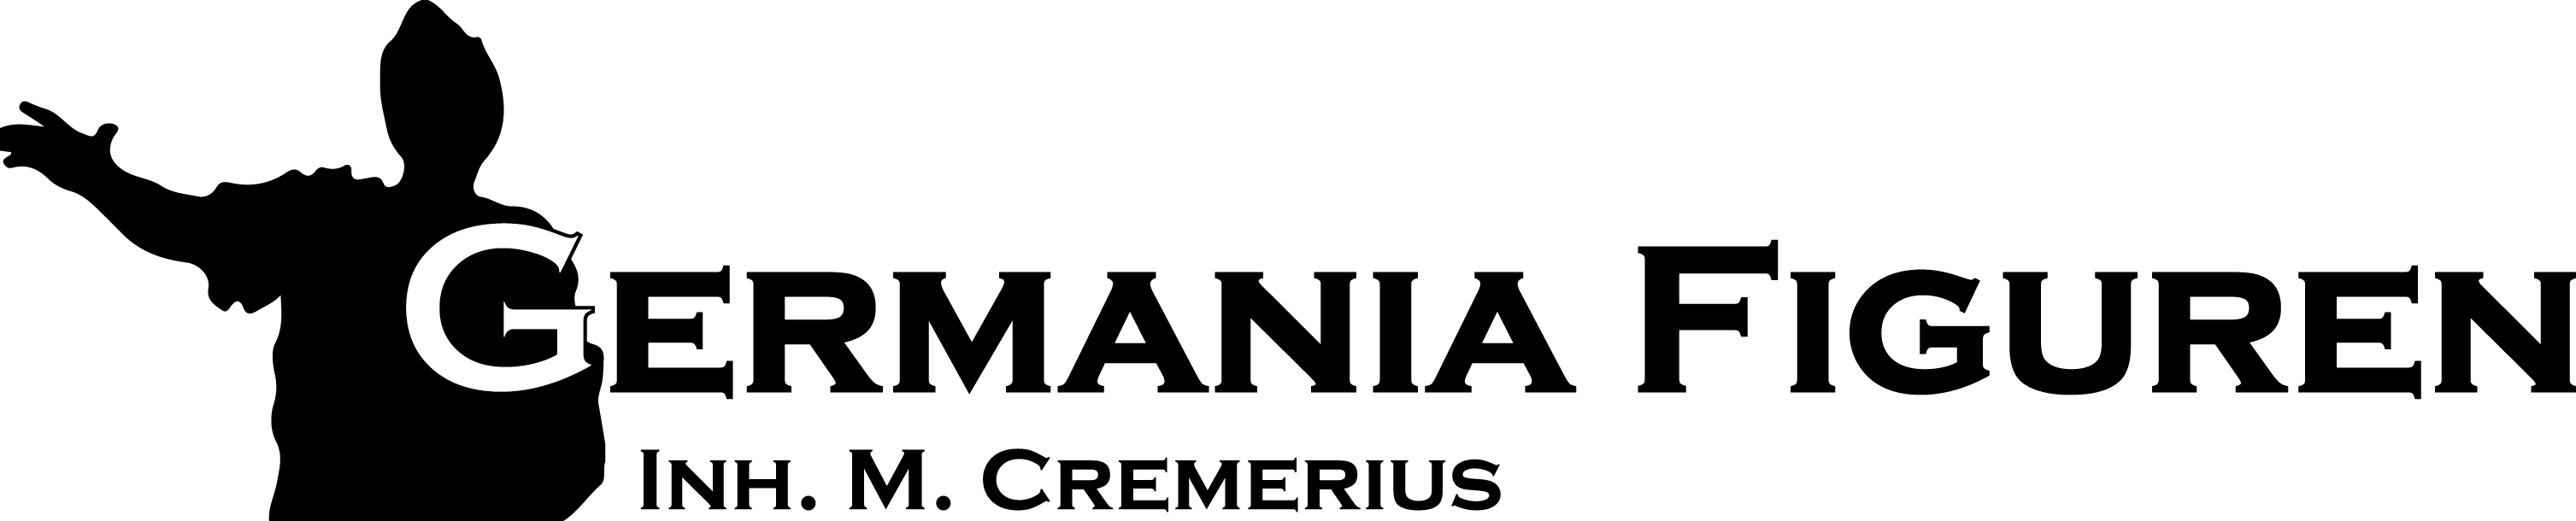 Germania-Figuren-Logo